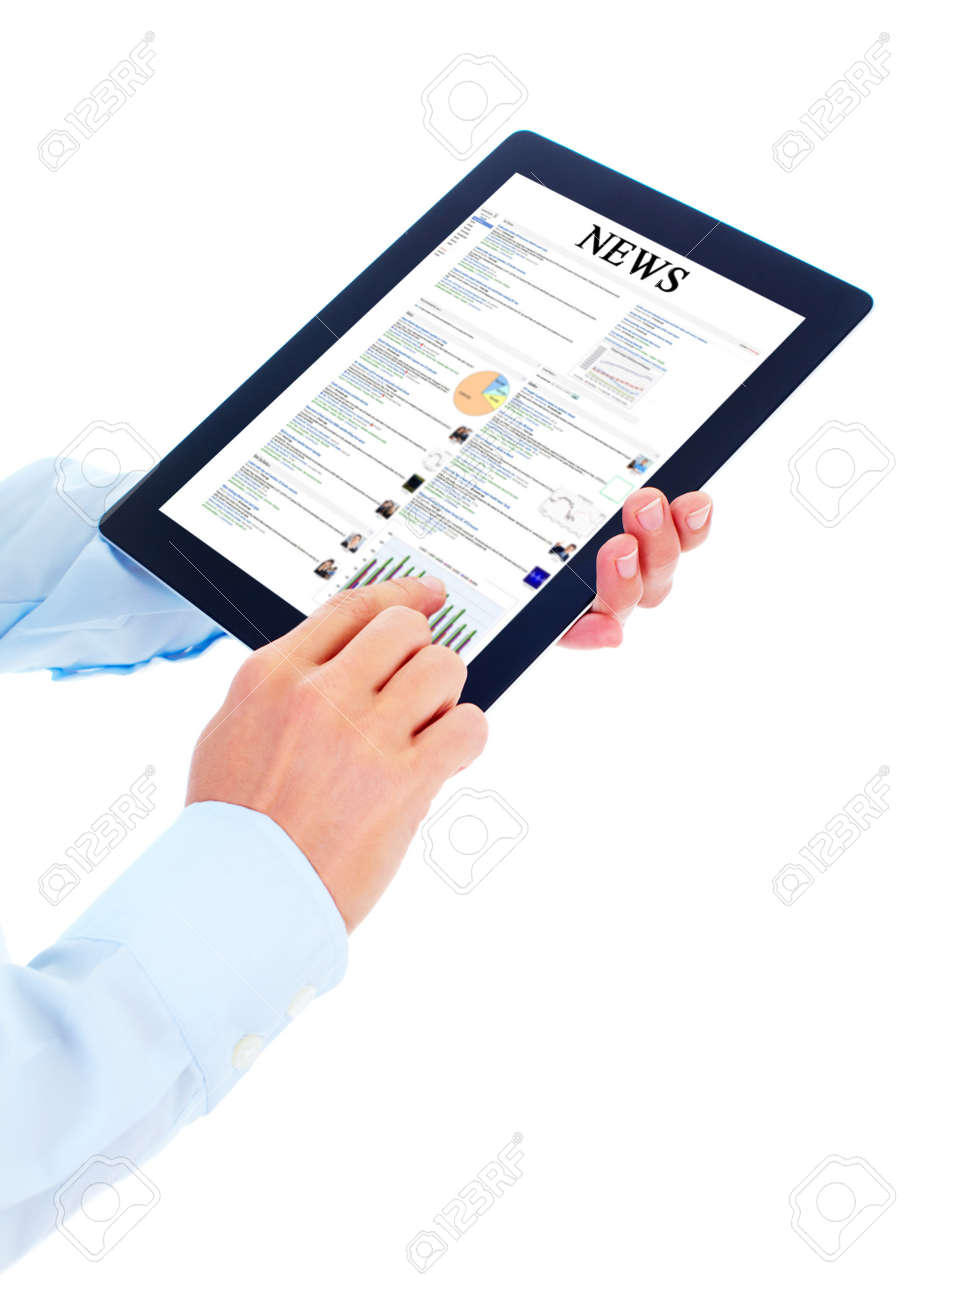 Tablet computer. Stock Photo - 10630188